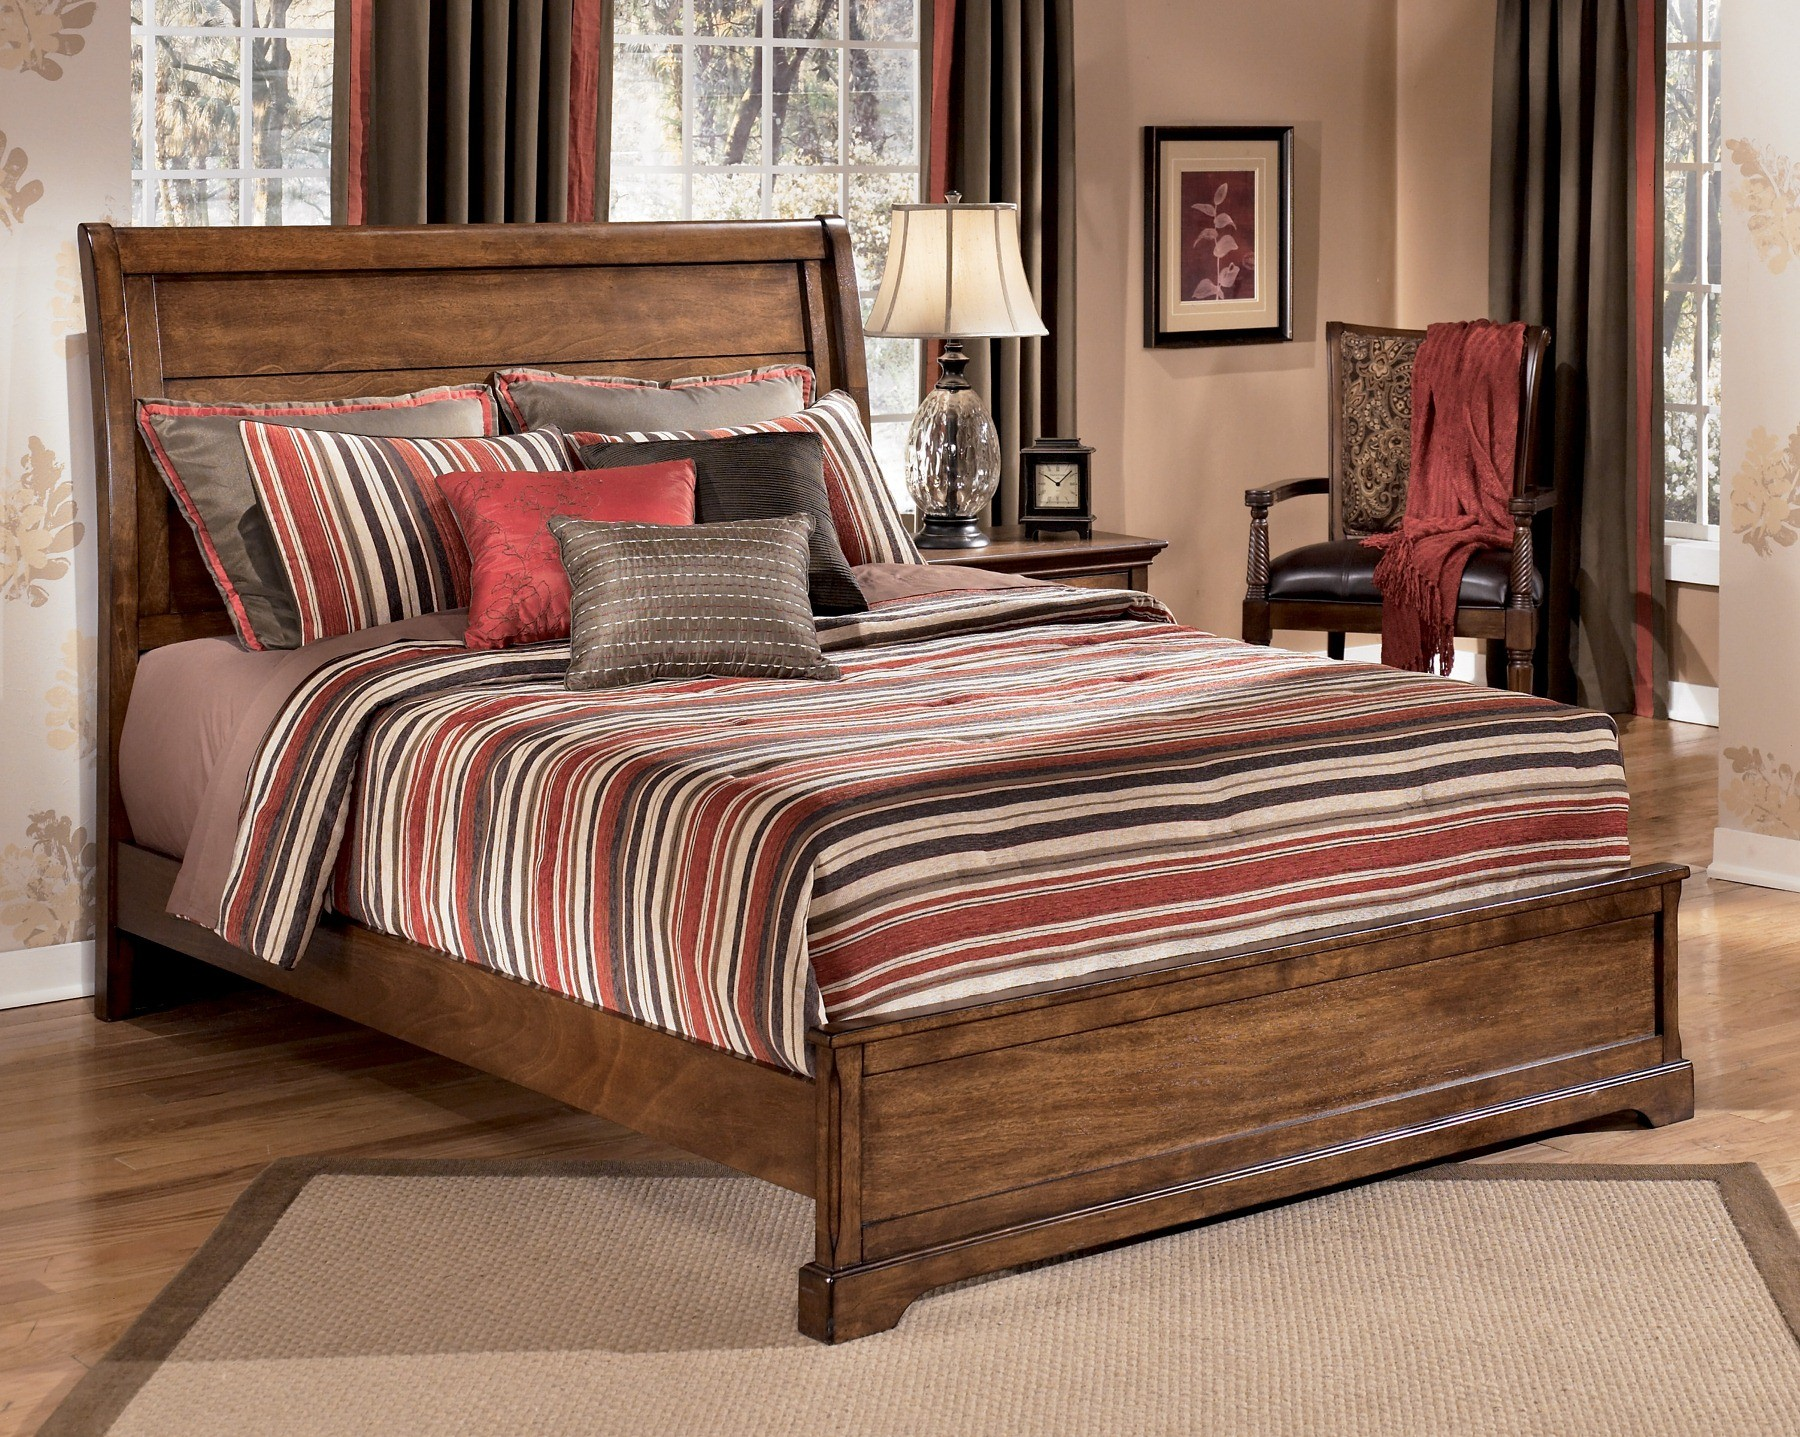 Laura Ashley Sleigh Bed Hot Girls Wallpaper